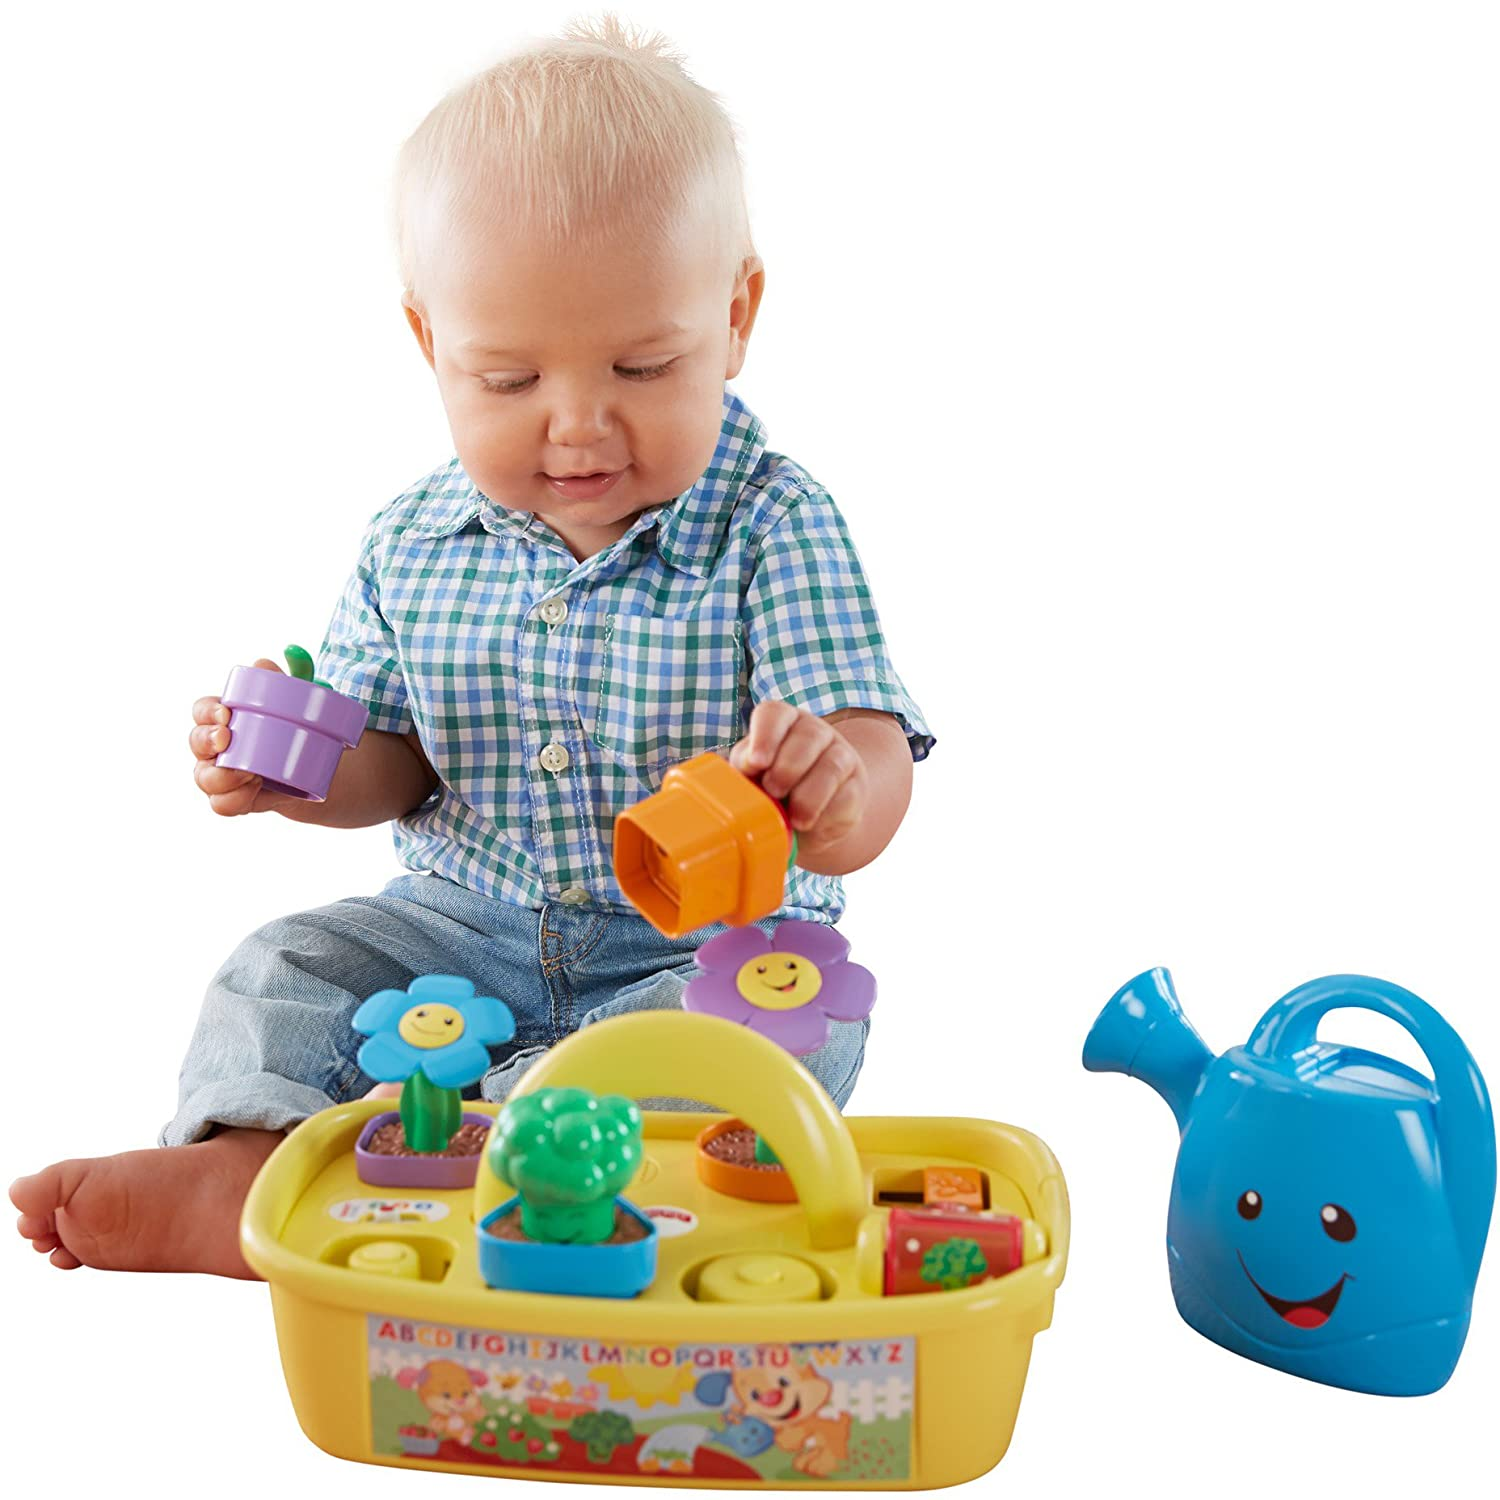 Baby Toys for 1 Year Old to Learn and Grow - YouTube